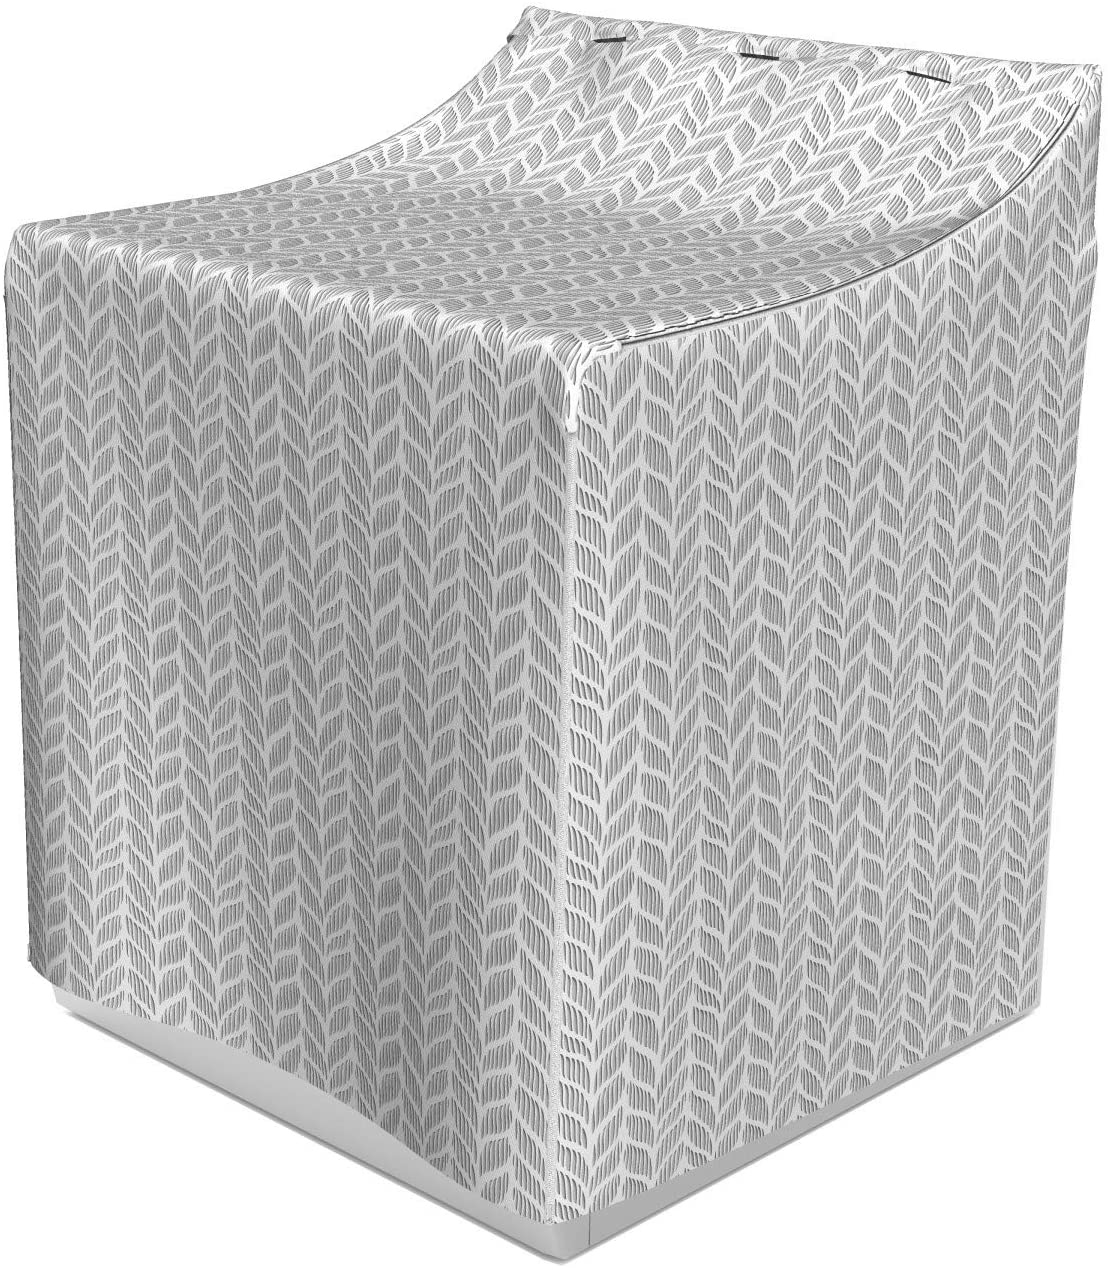 Lunarable Grey Abstract Washer Cover, Norwegian Pattern Traditional Design with a Modern Representation, Suitable for Dryer and Washing Machine, 29